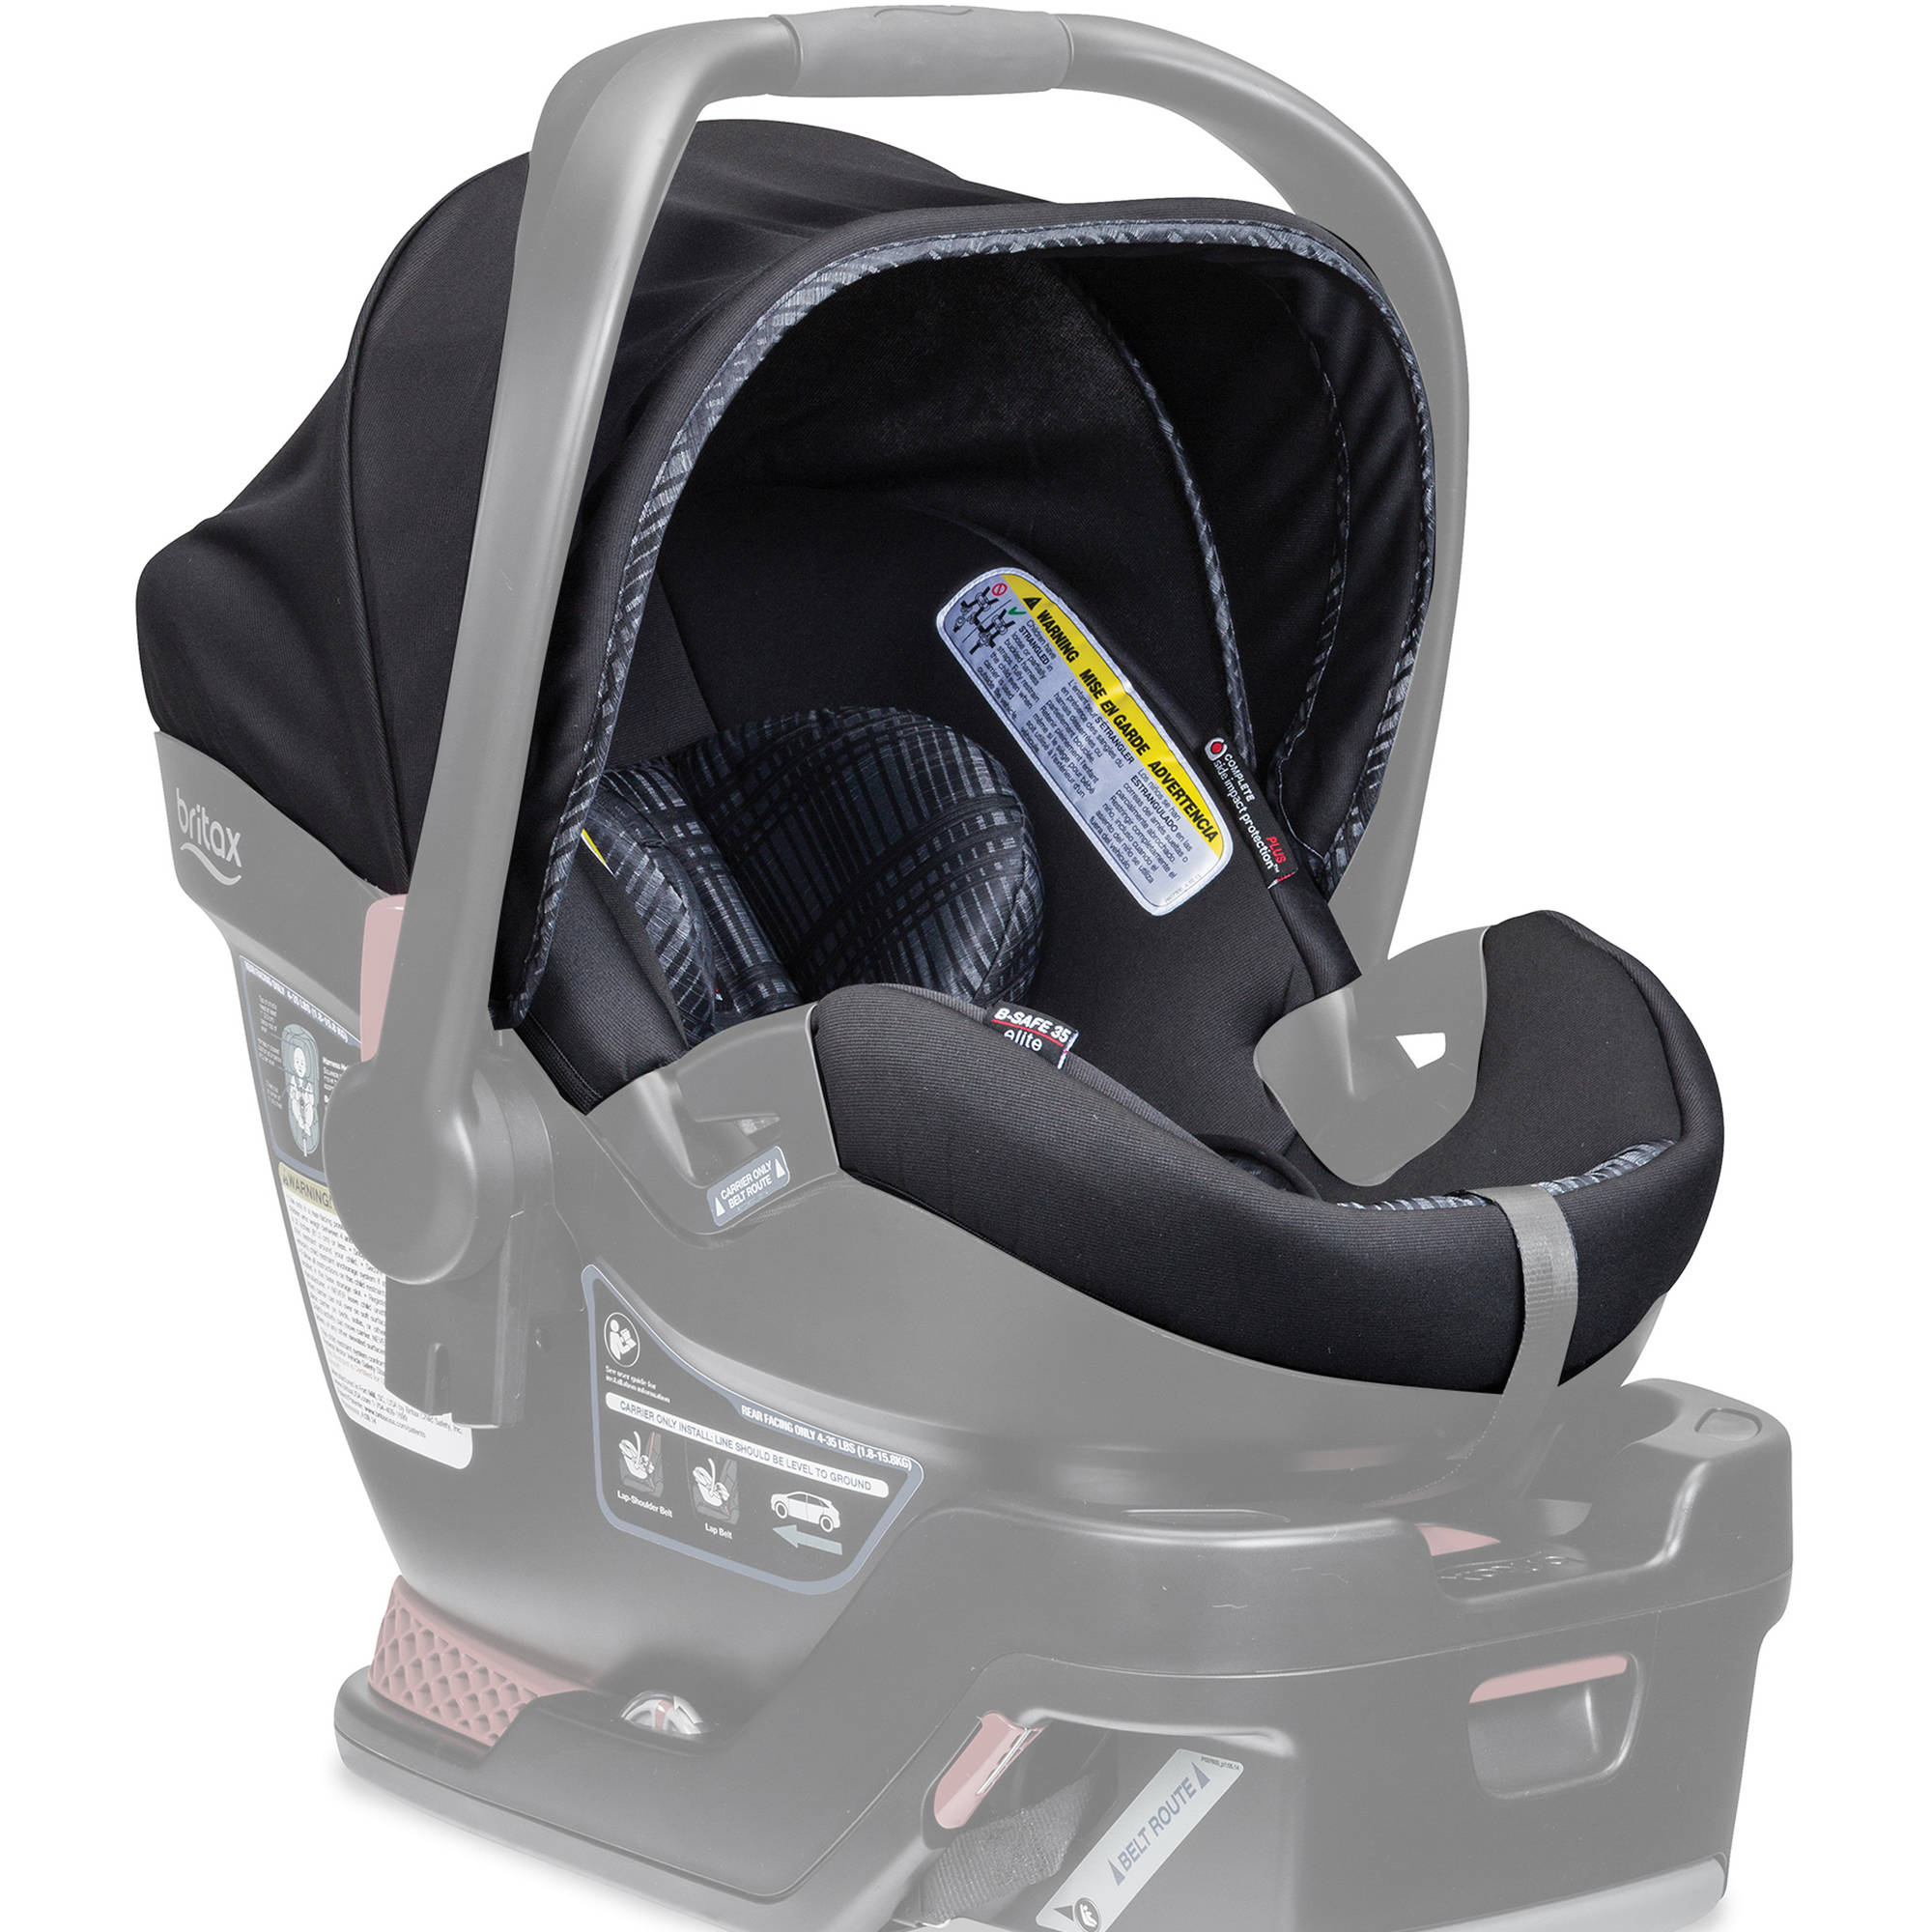 Britax Car Seat Cover Set, B-Safe 35 Elite Infant Car Seat, Domino